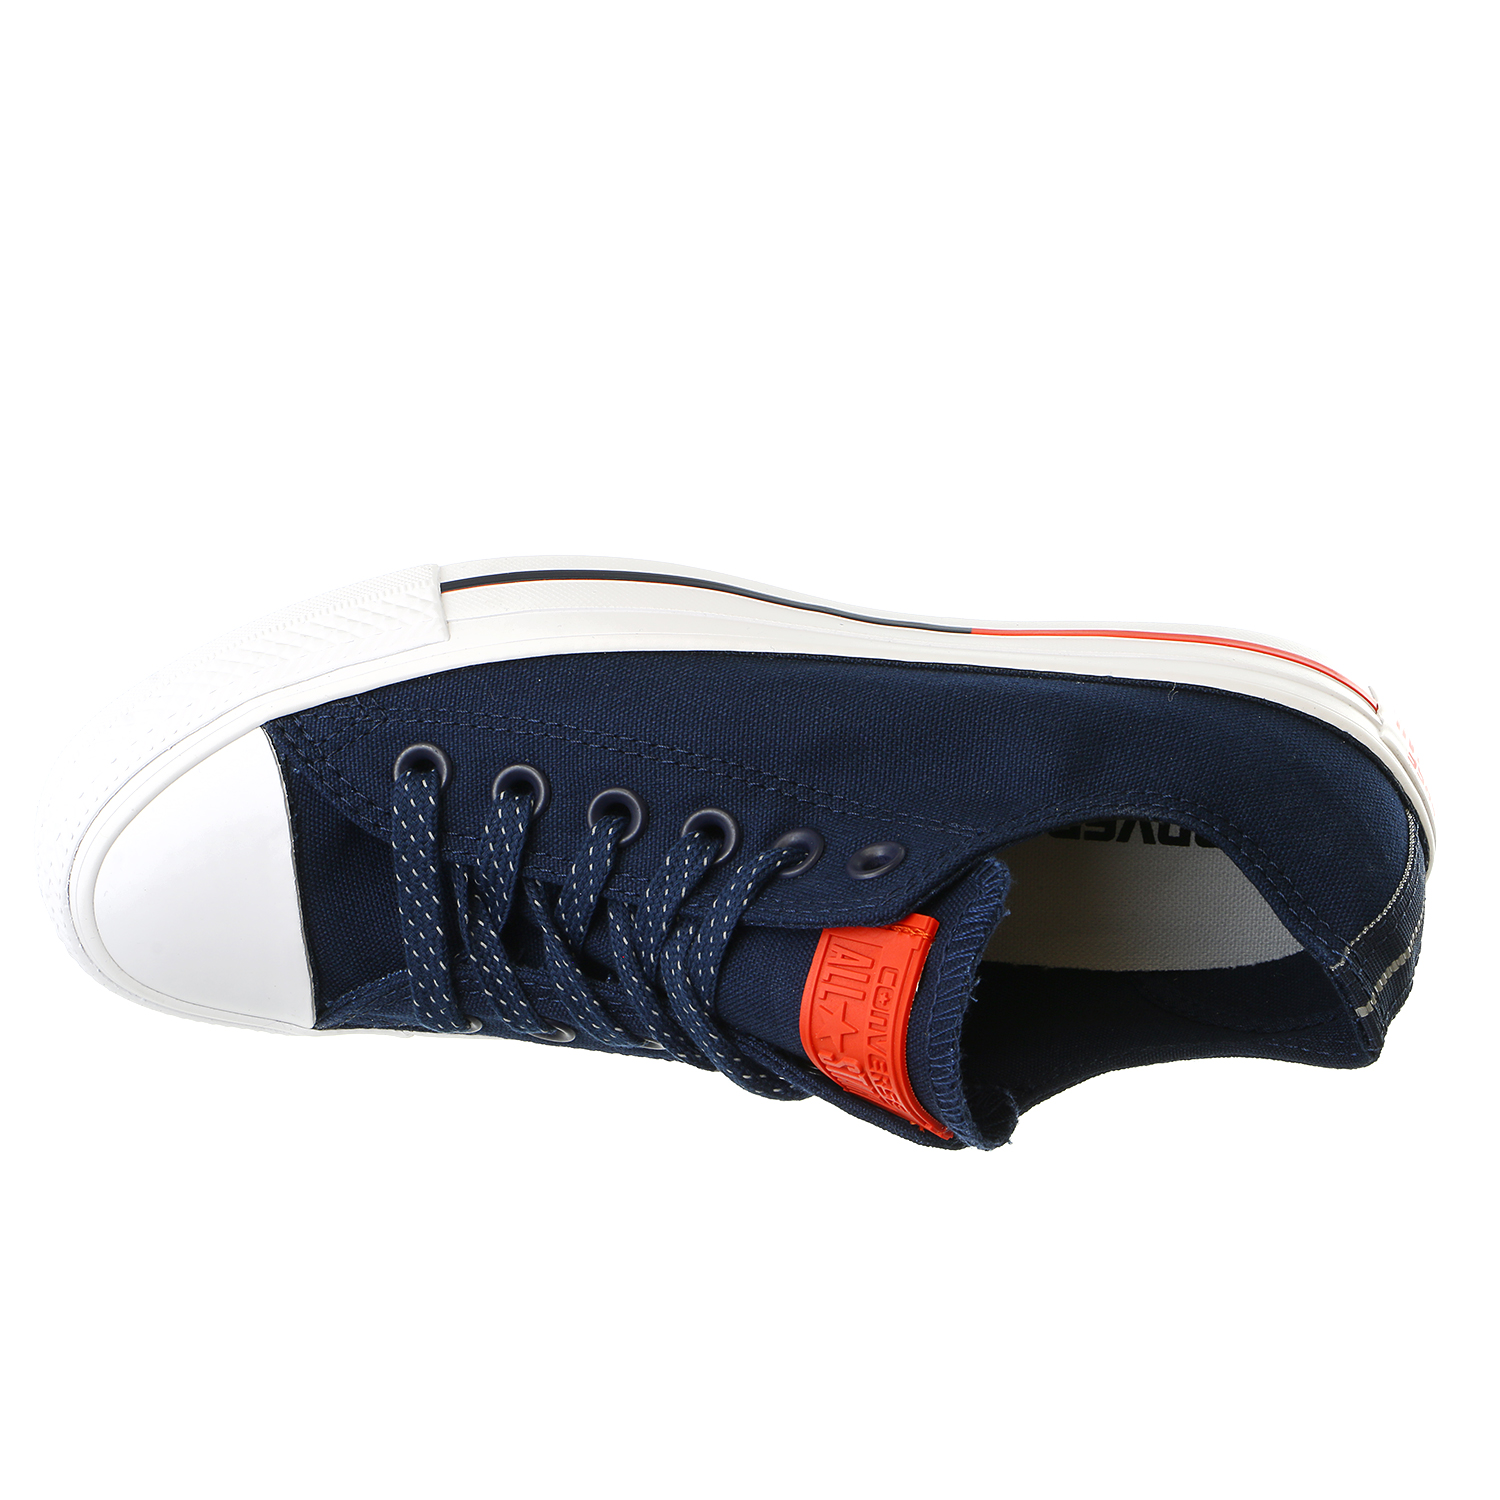 Converse Unisex Chuck Taylor All Star OX Fashion Sneaker Shoe - Mens